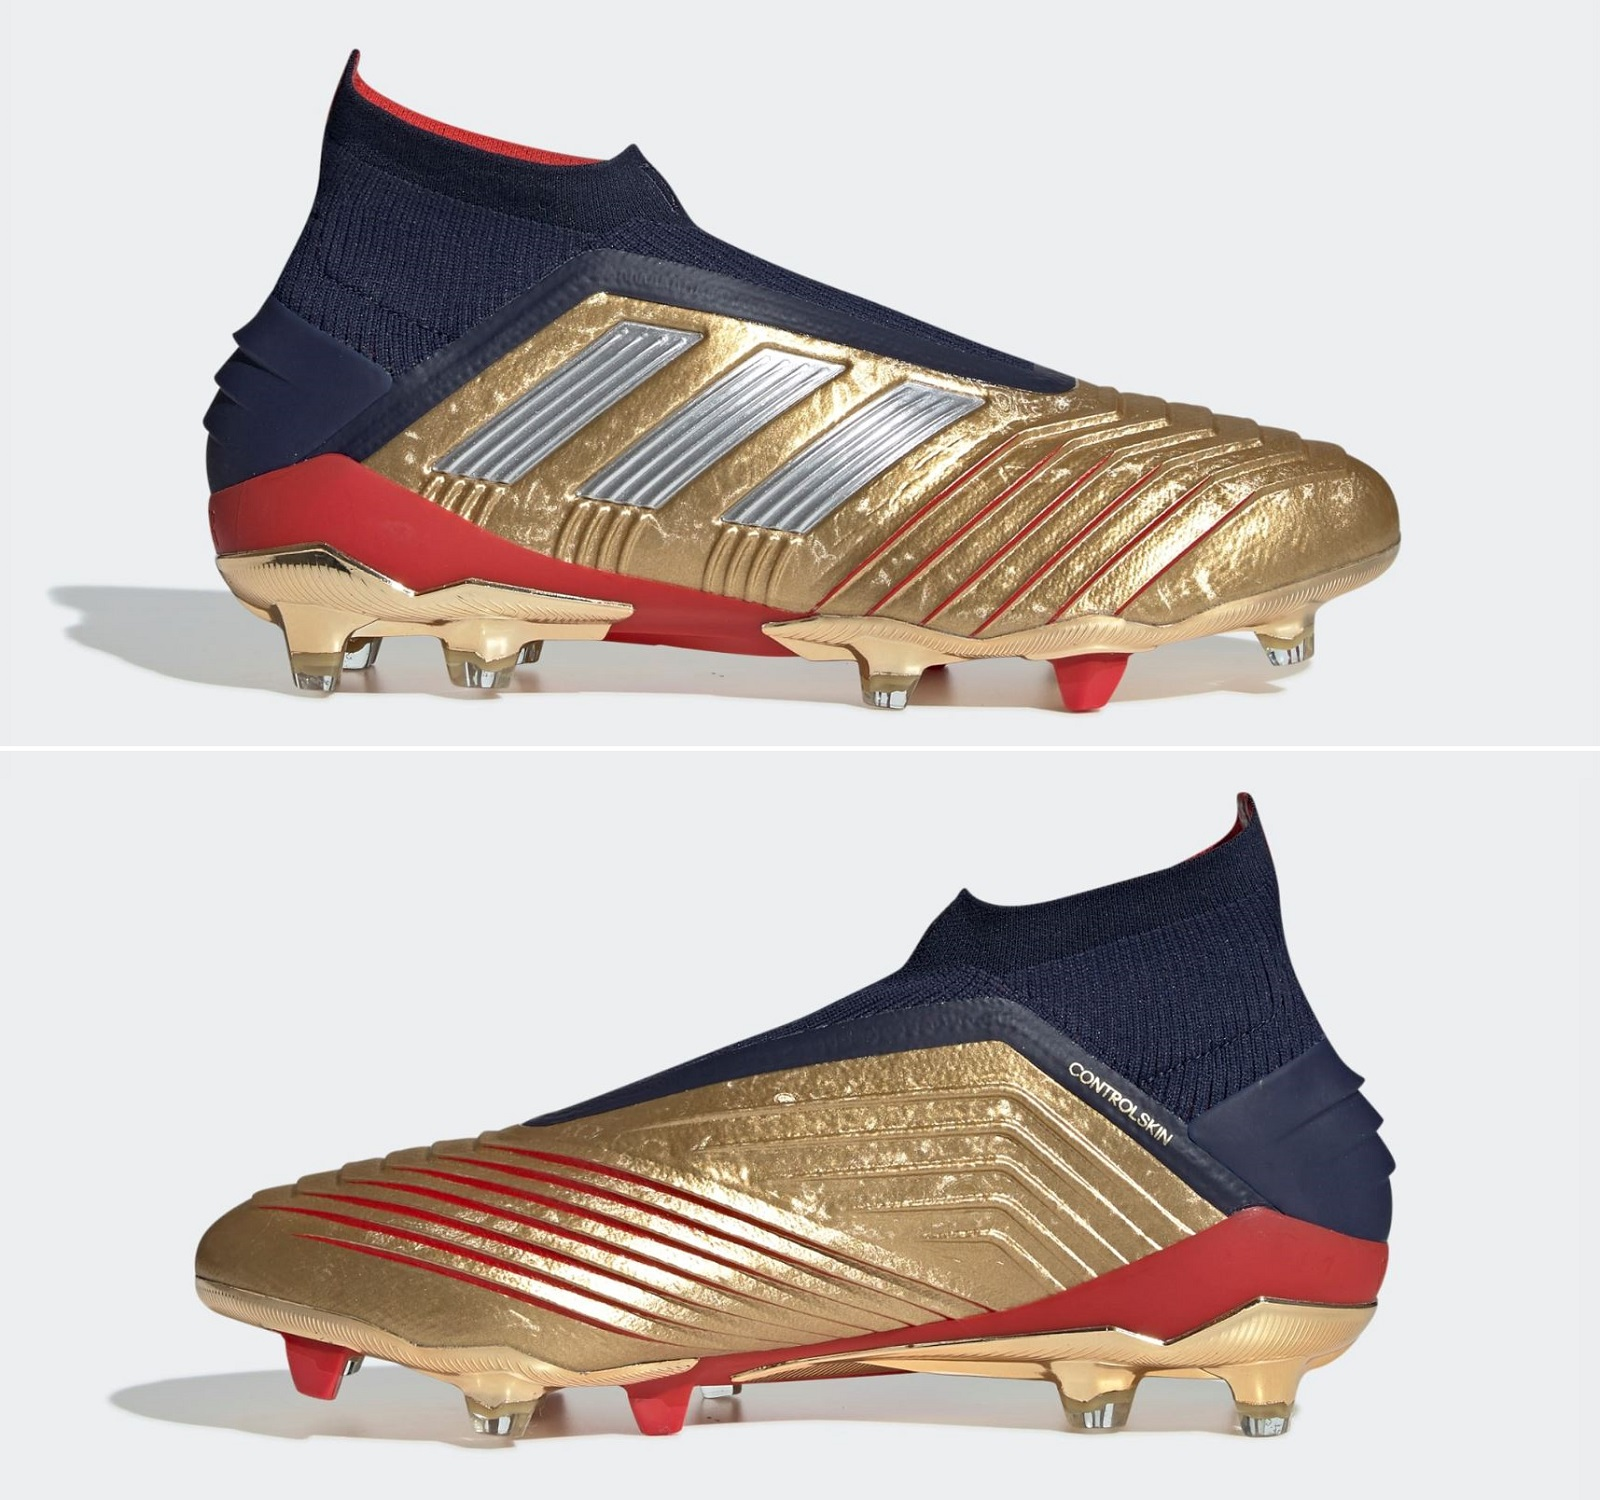 brand new 0639d e5f11 adidas Predator 19+ Gold Limited Edition